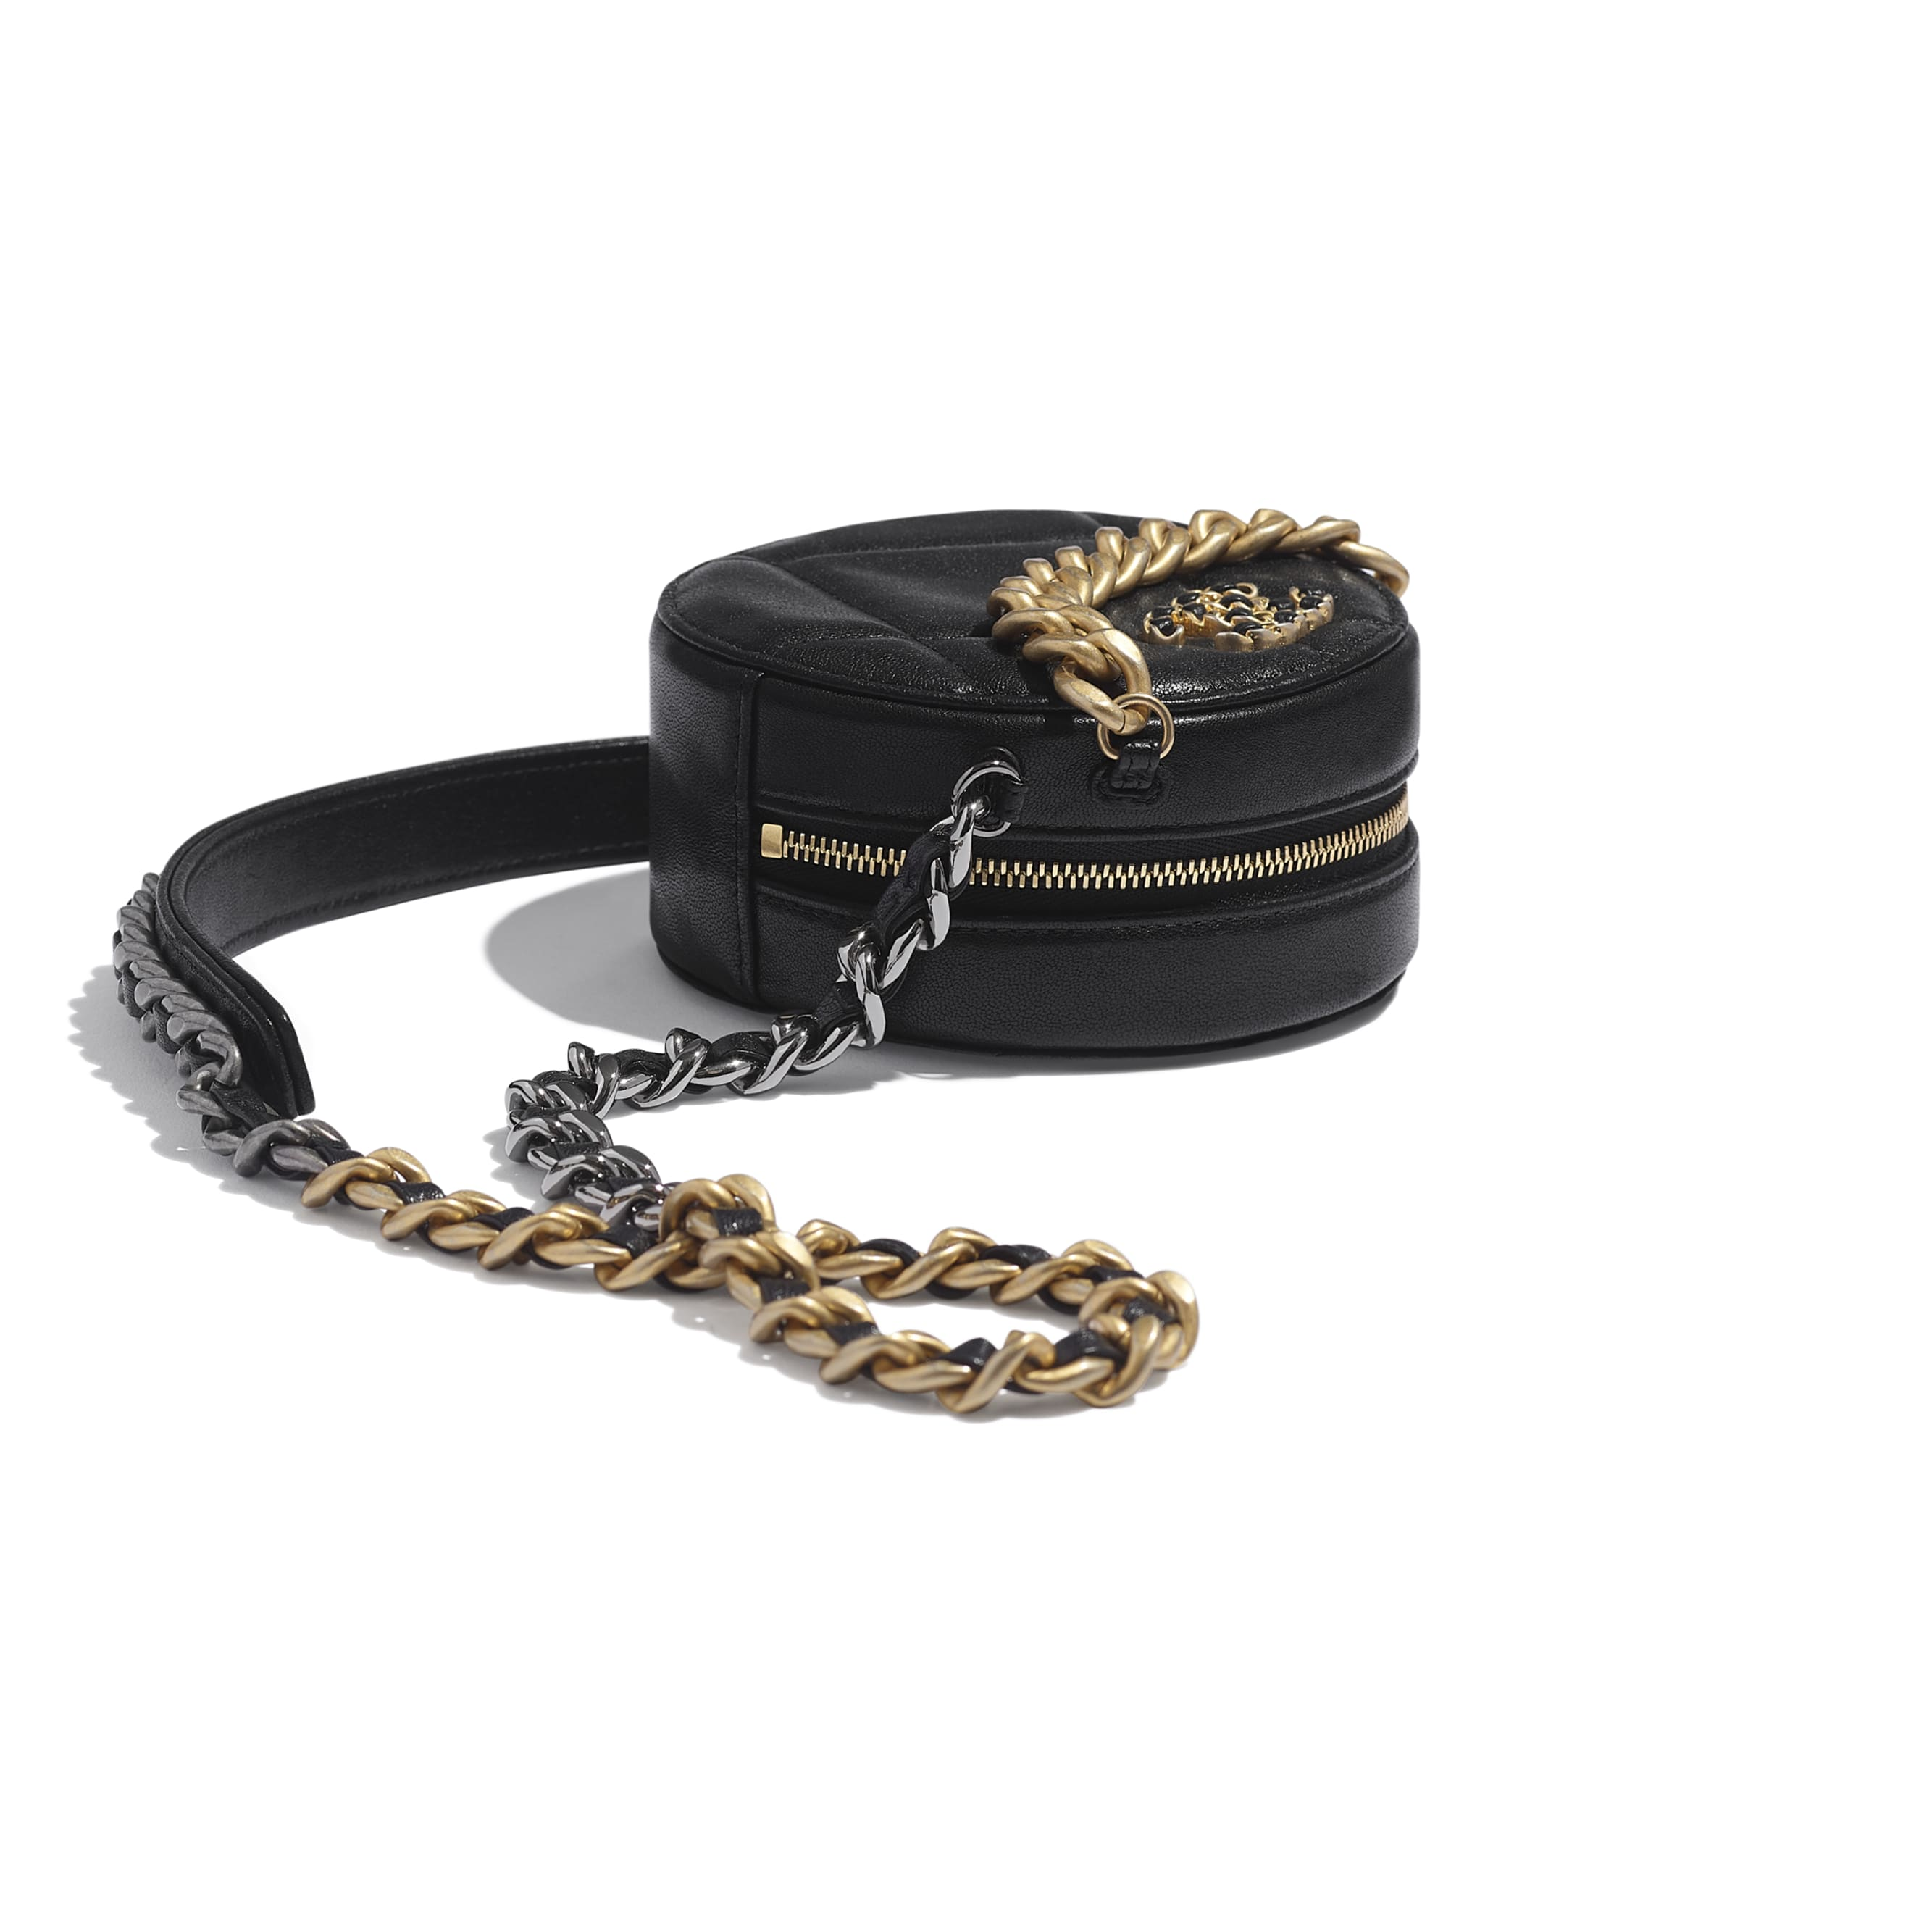 CHANEL 19 Clutch with Chain - Black - Lambskin, Gold-Tone, Silver-Tone & Ruthenium-Finish Metal - Extra view - see standard sized version